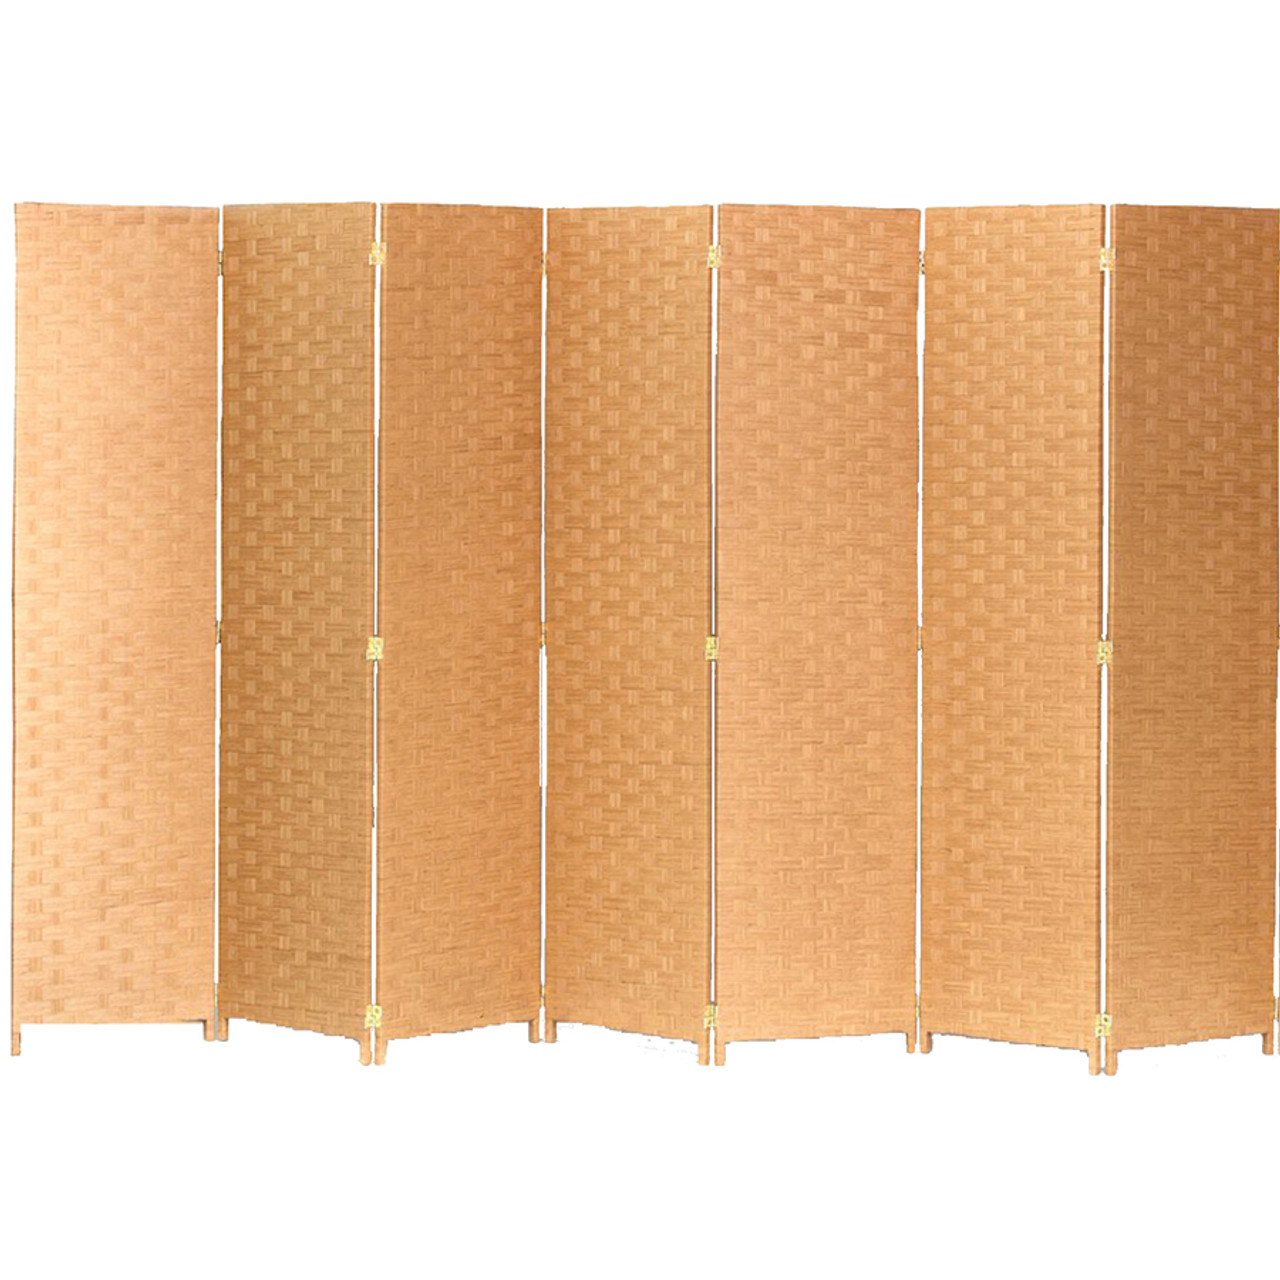 Bamboo Woven Panel Room Divider, Privacy Partition Screen, 7 Panels in USA, California, New York, New York City, Los Angeles, San Francisco, Pennsylvania, Washington DC, Virginia, Maryland